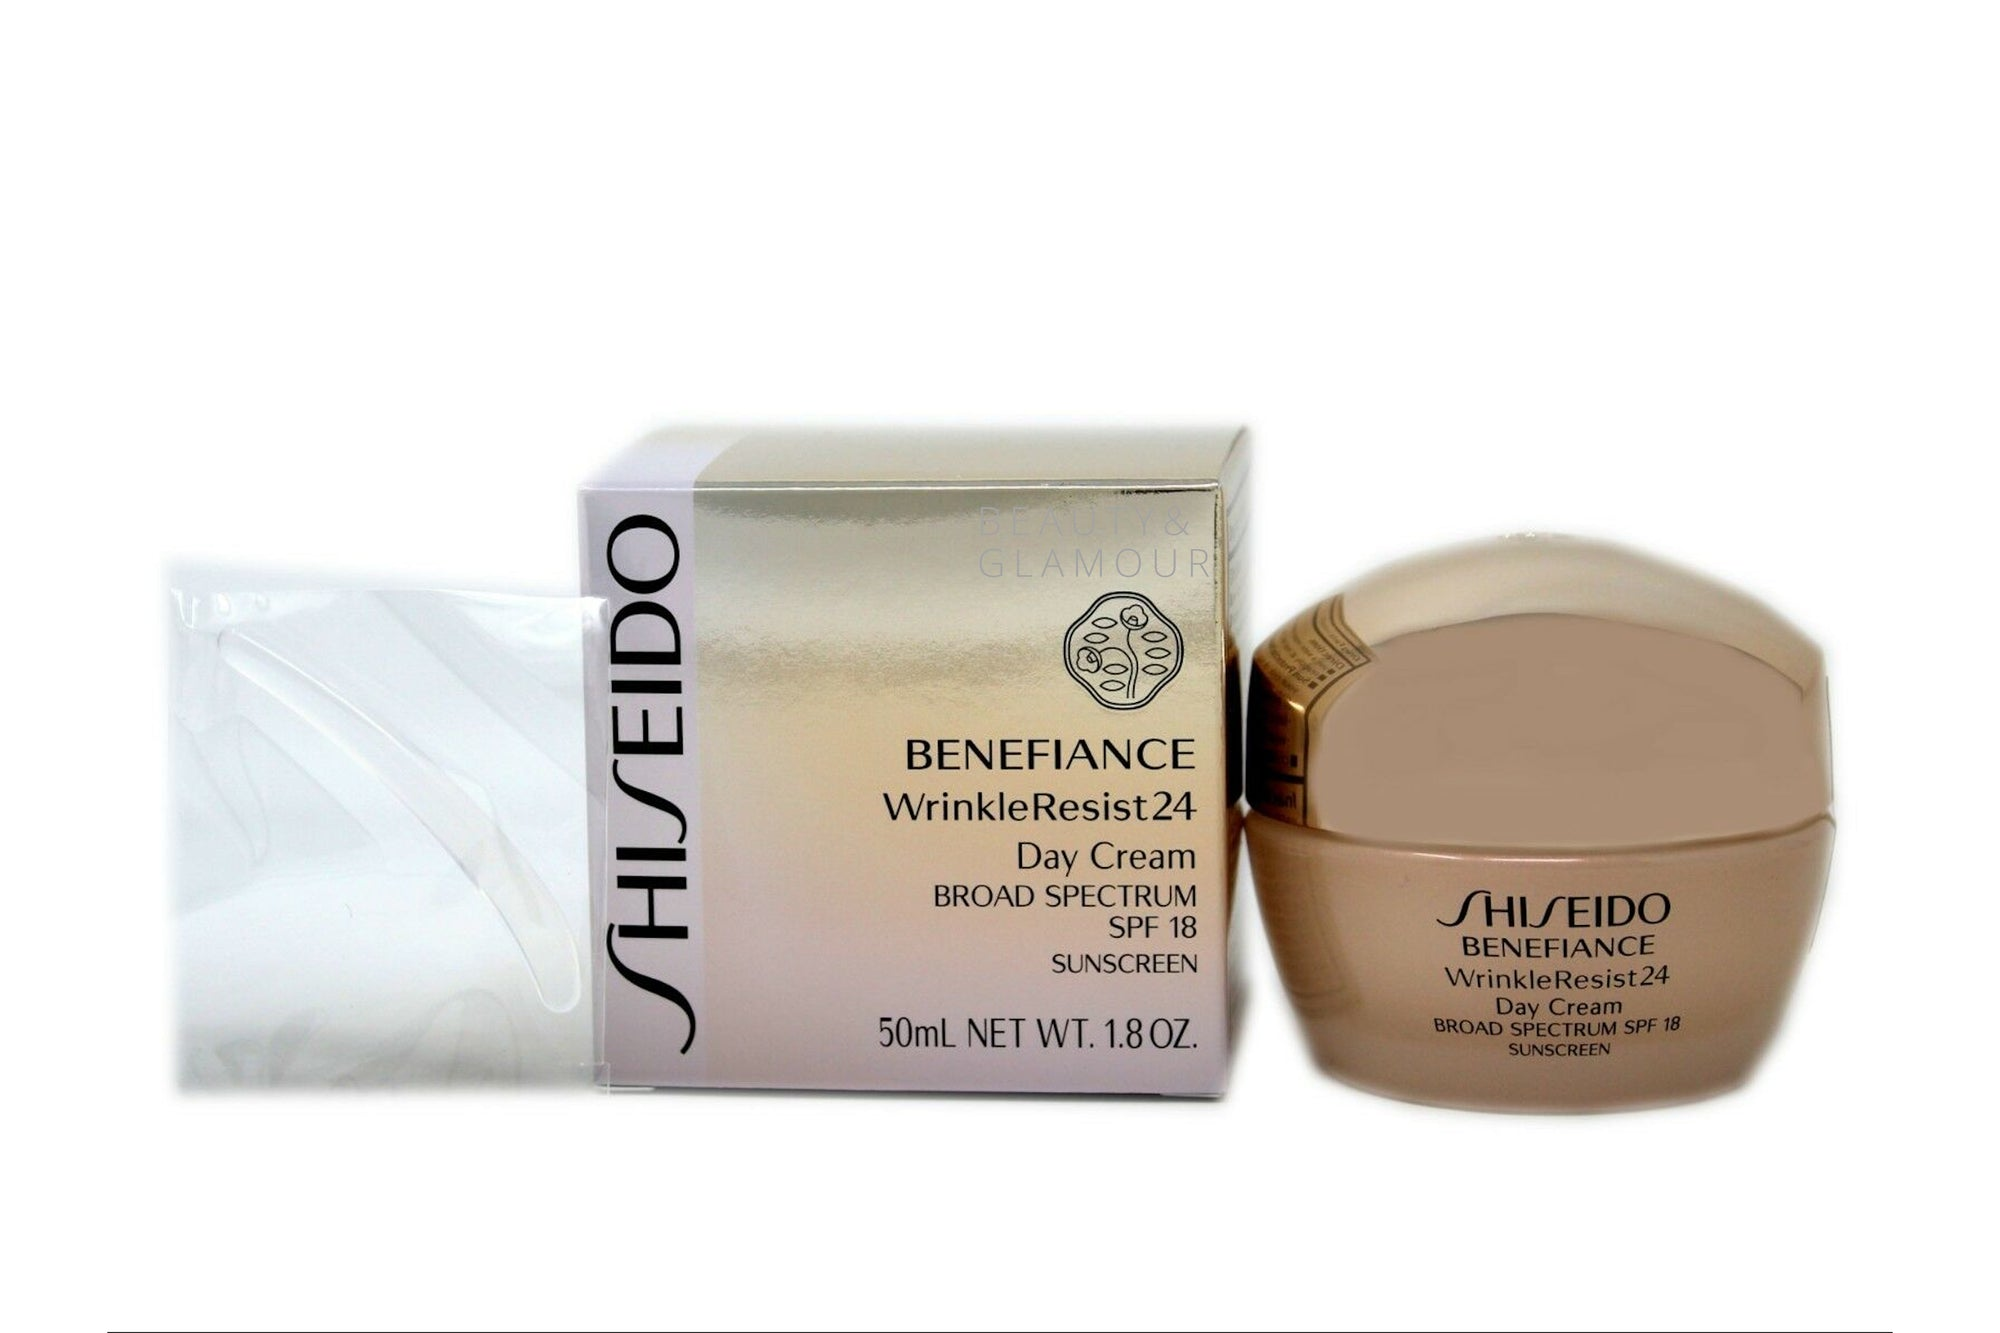 SHISEIDO BENEFIANCE WRINKLE RESIST 24 DAY CREAM SPF18